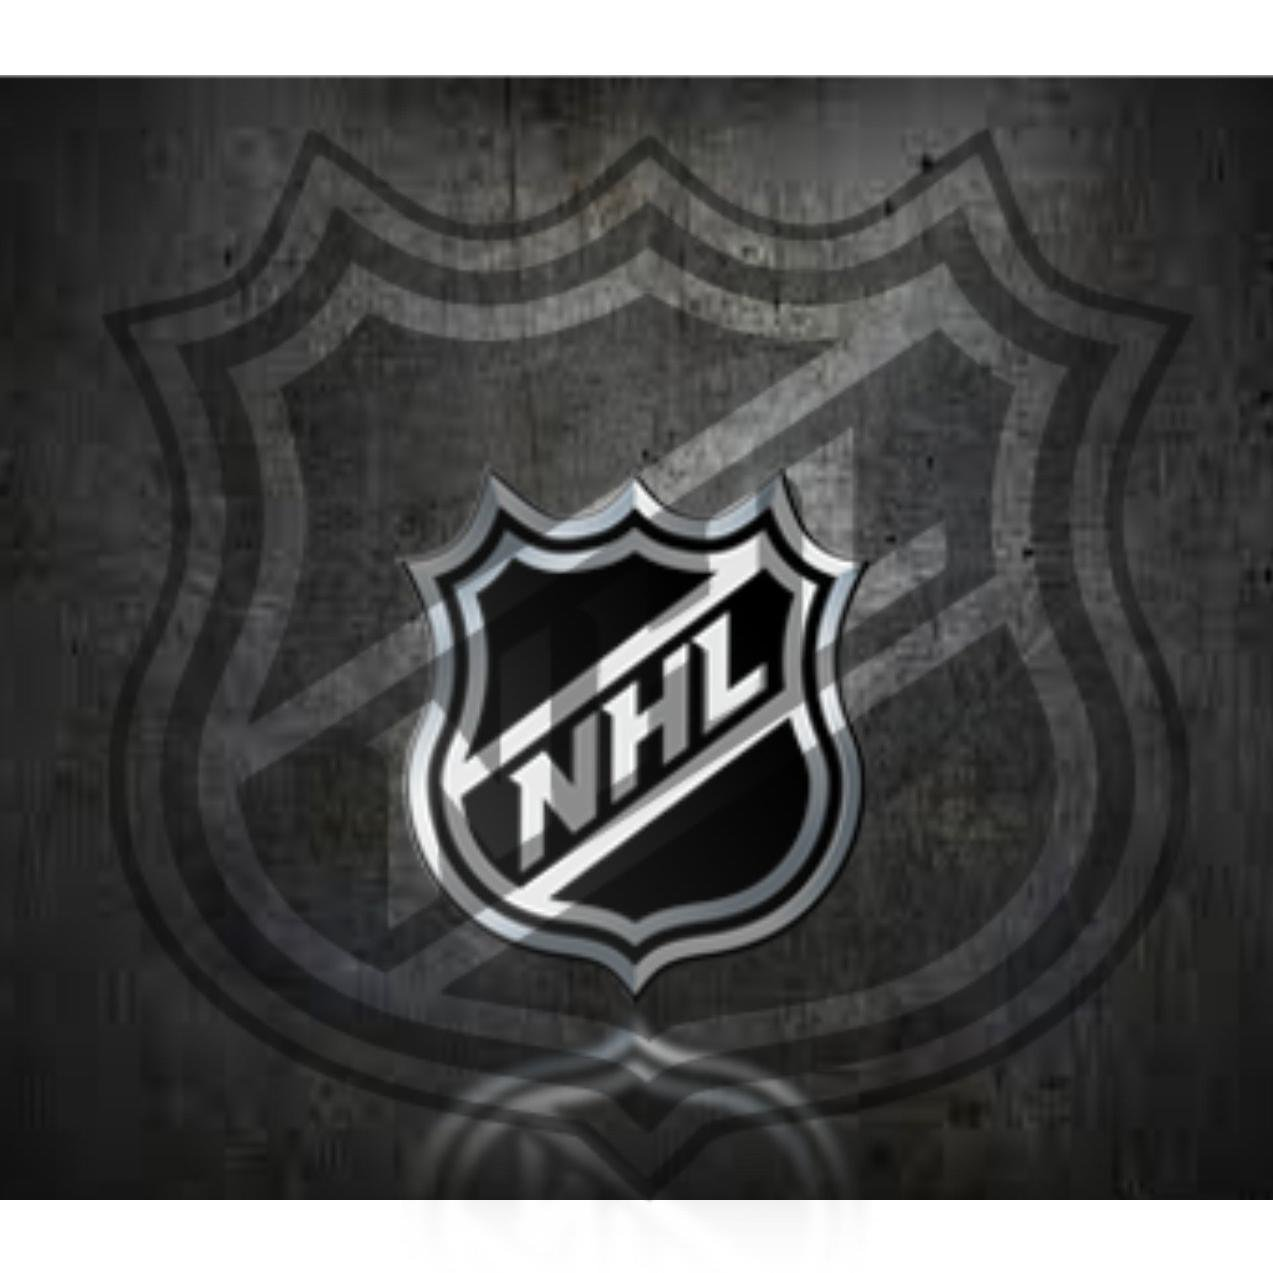 Nhl wallpaper nhlwallpapers twitter nhl wallpaper sciox Choice Image